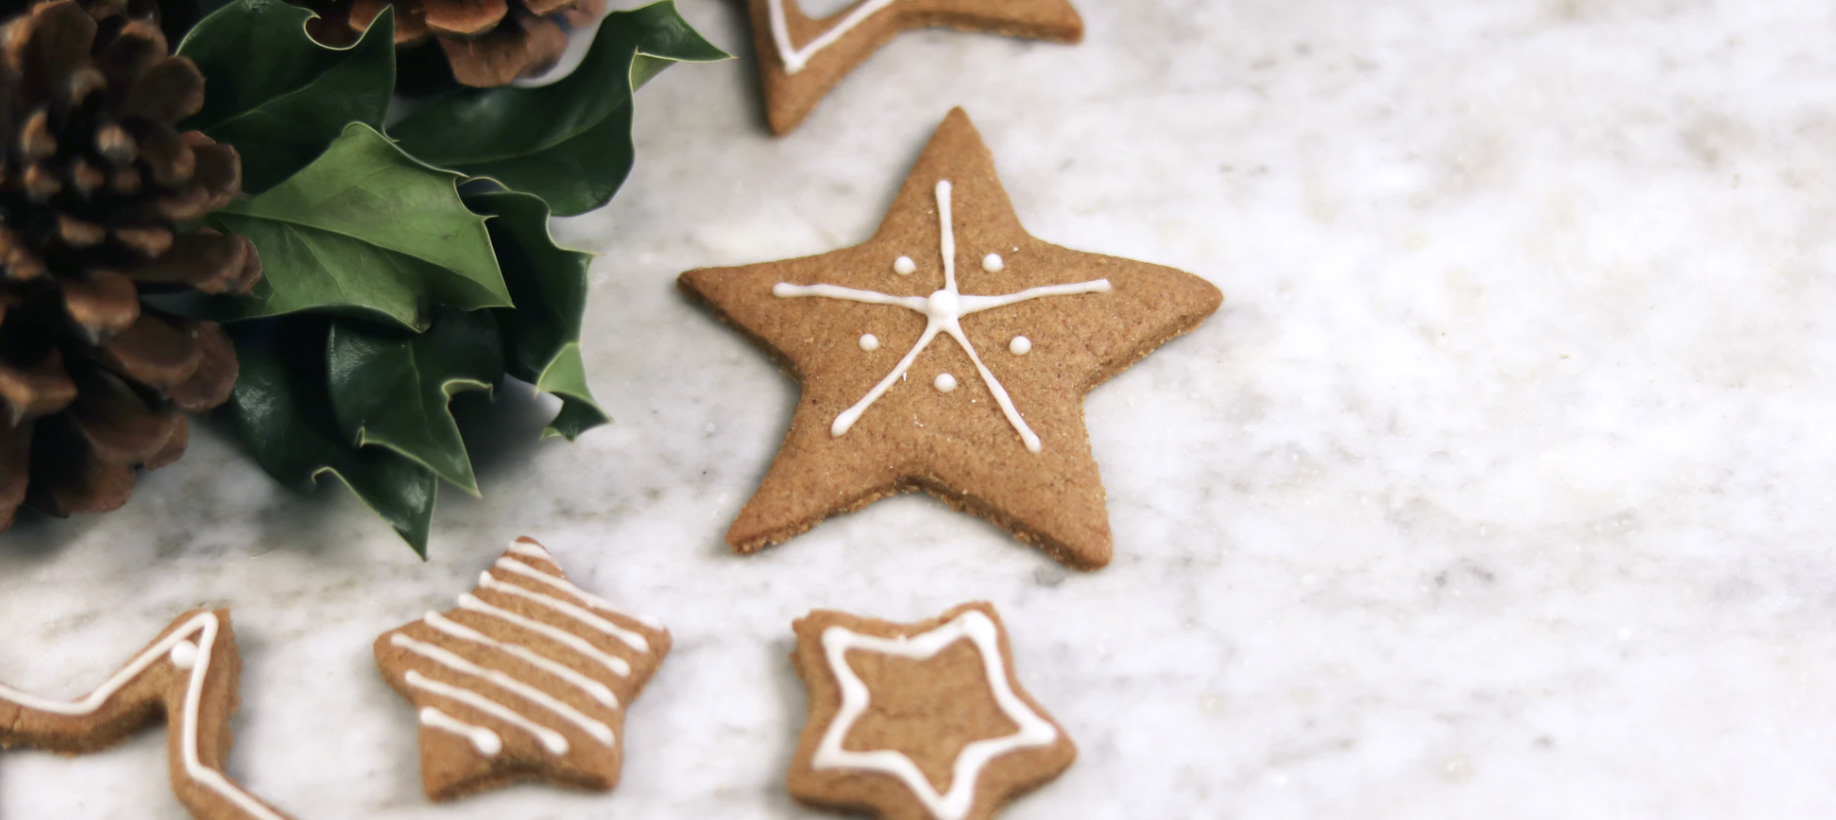 gingerbread cookies. Unsplash - Lydia Matzal